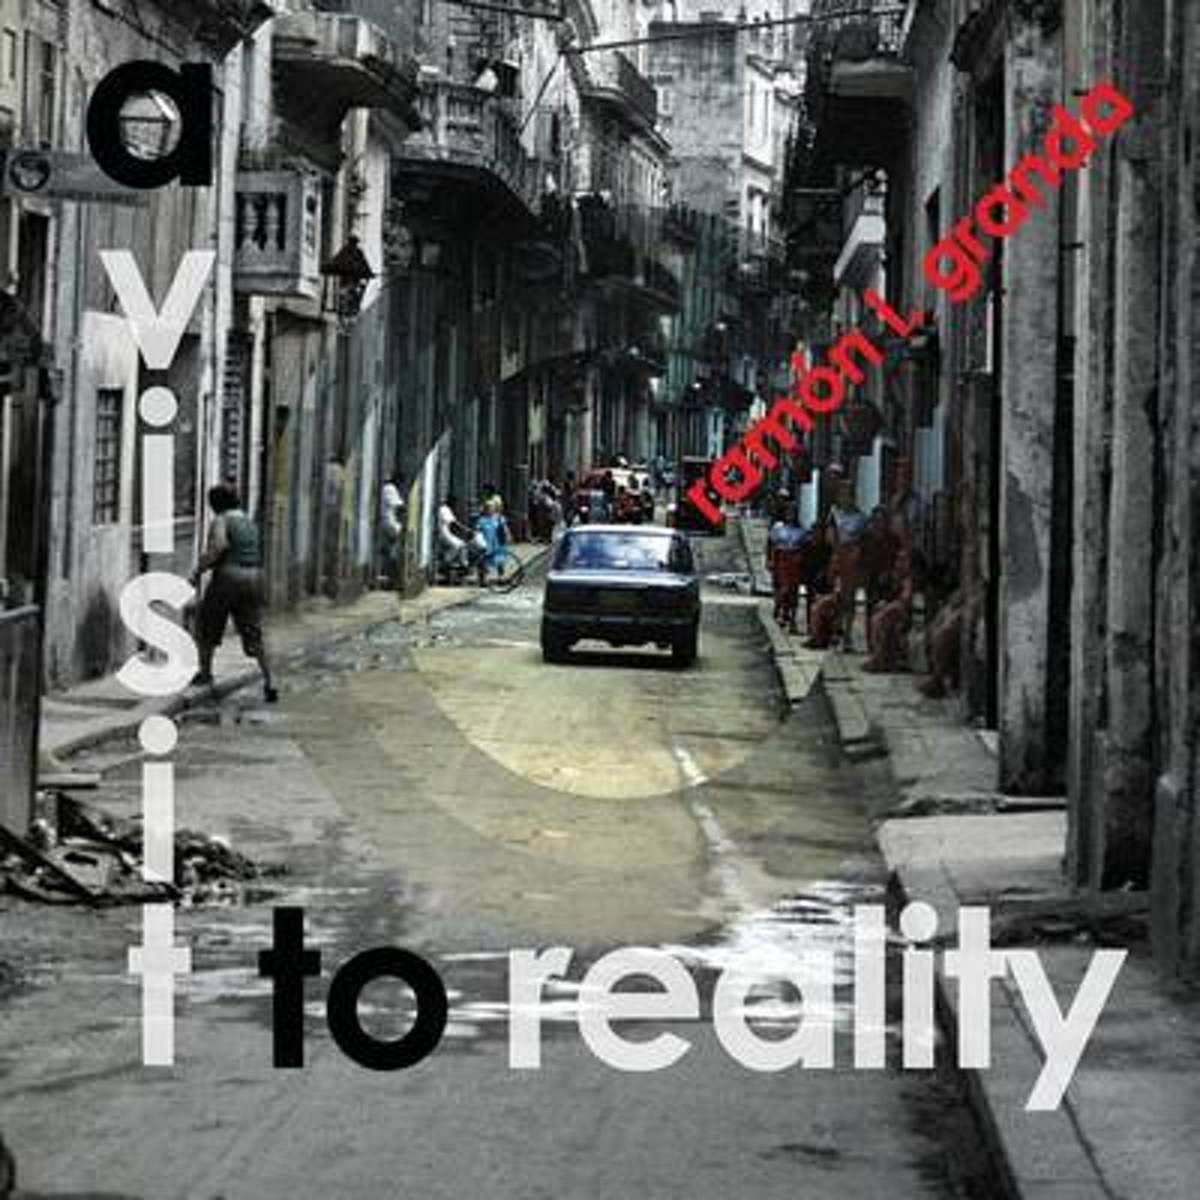 A Visit to Reality